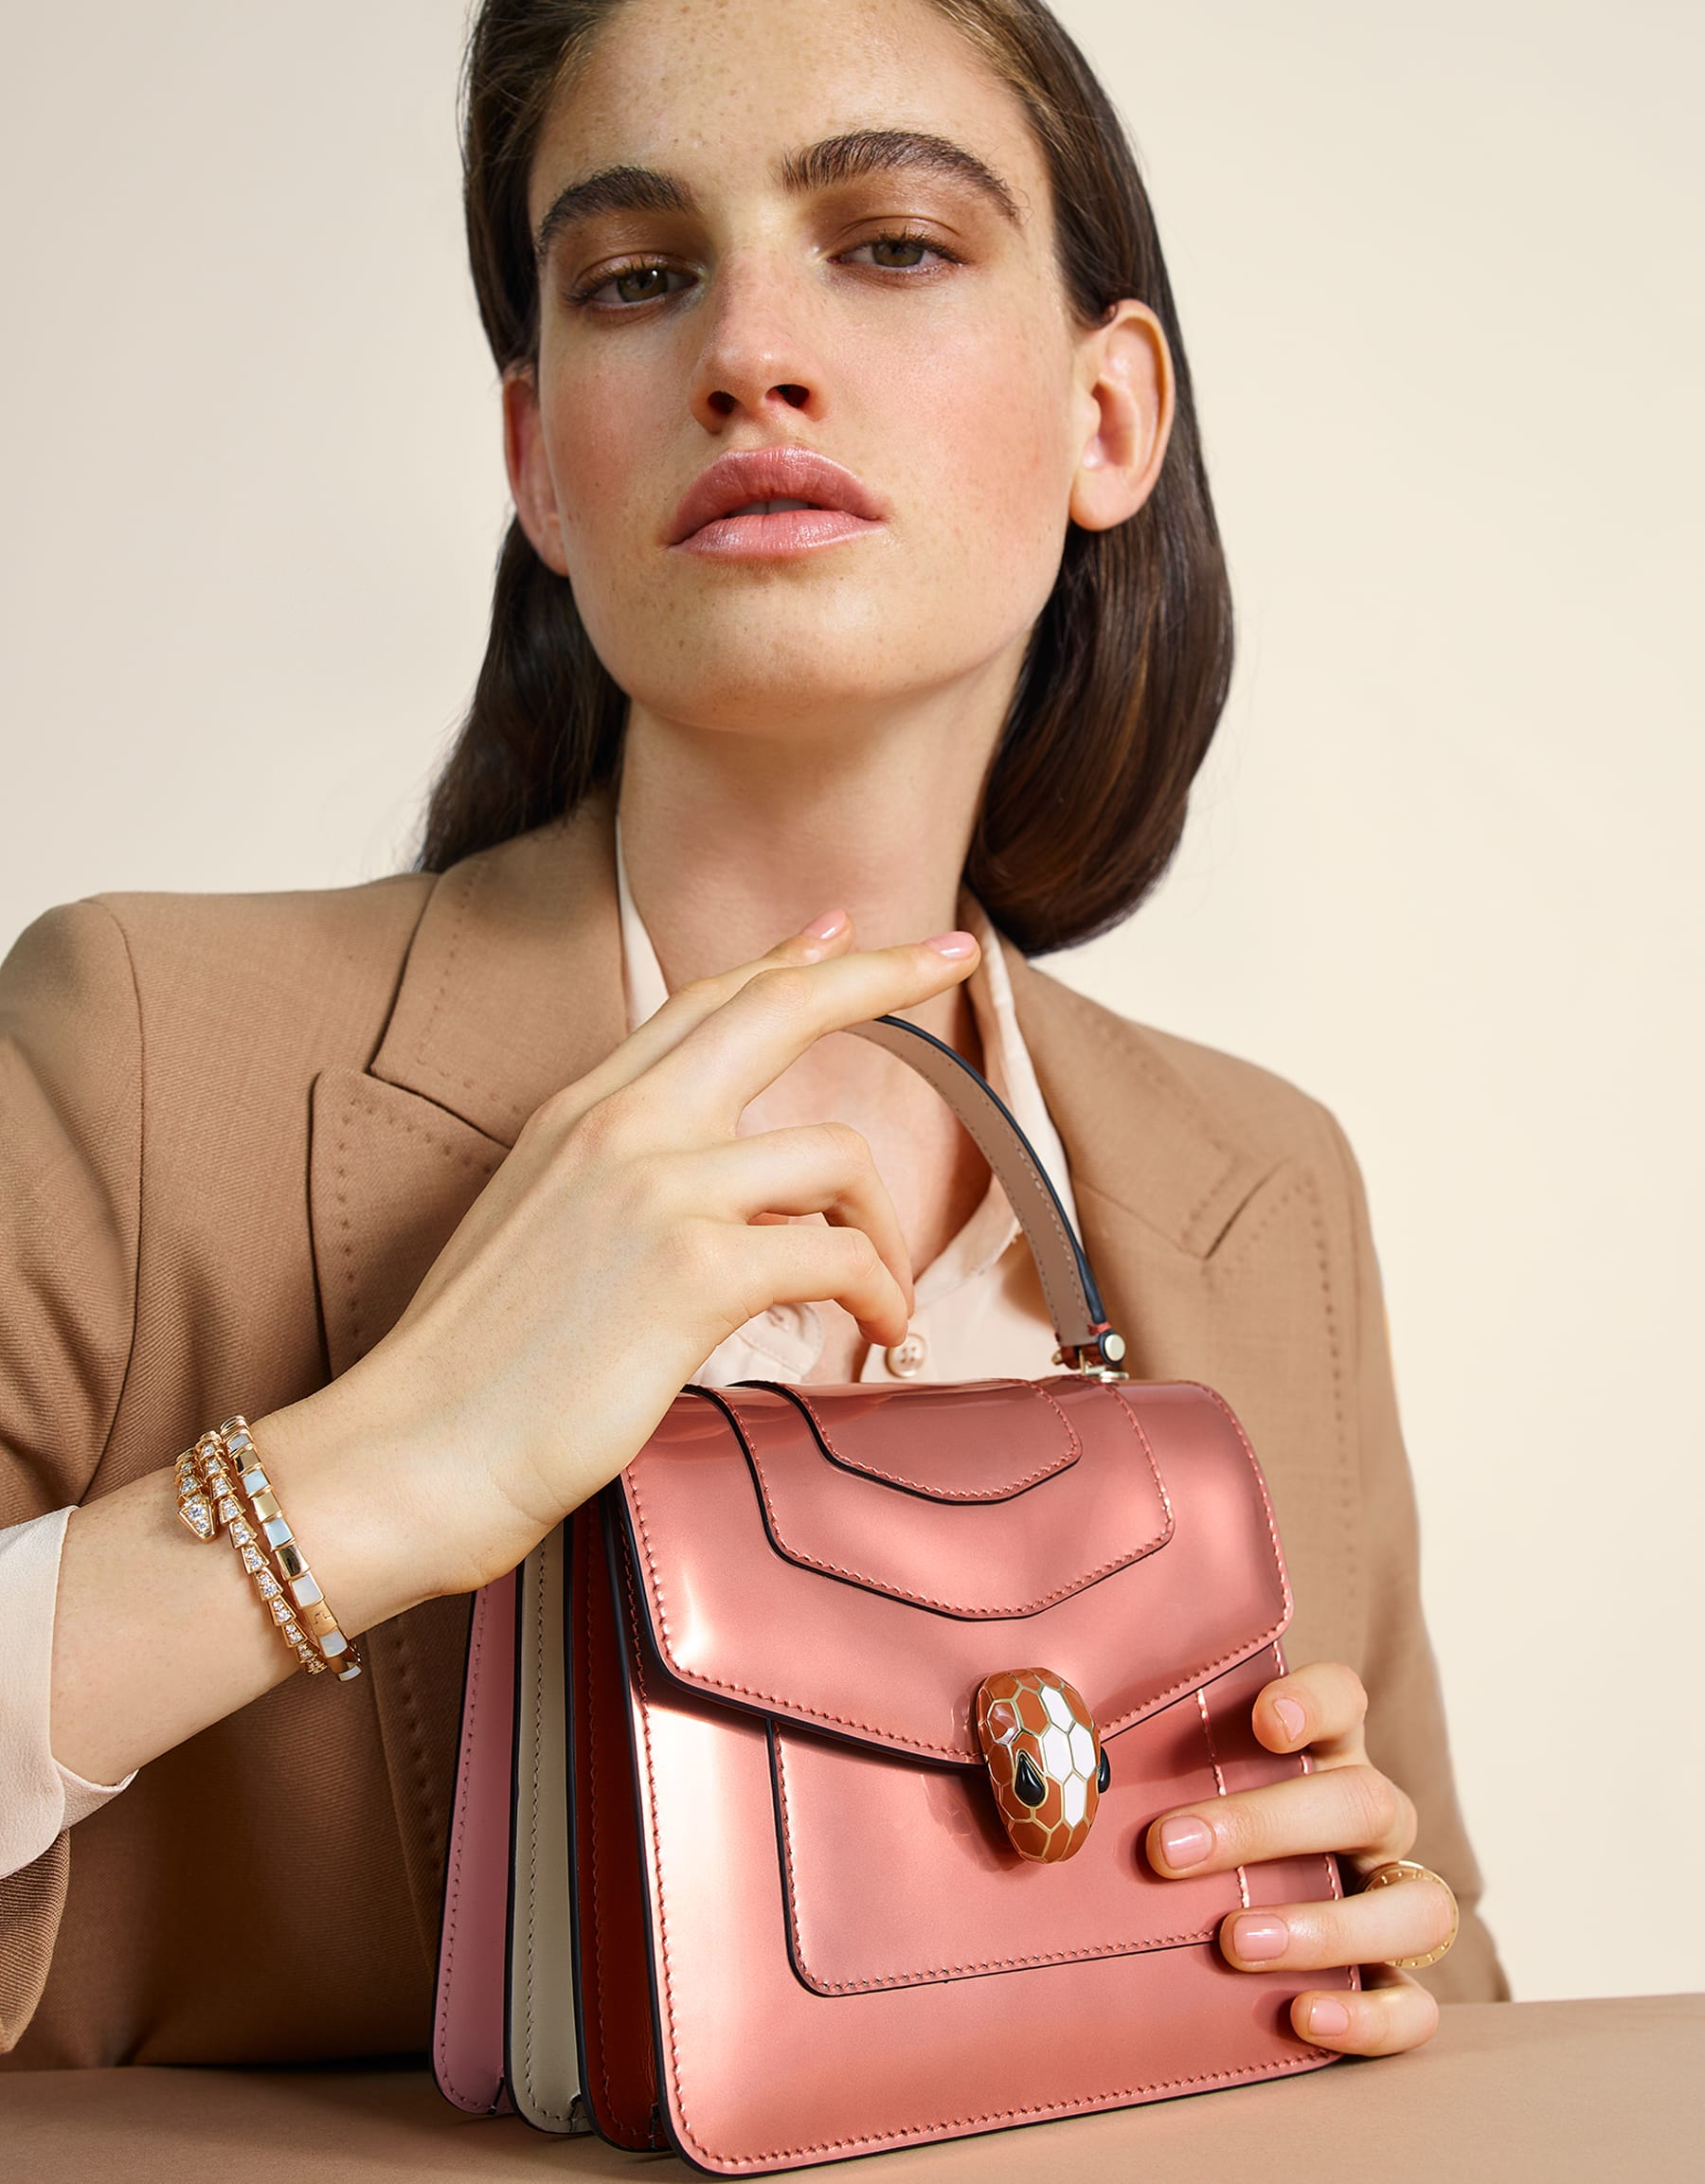 Serpenti Forever crossbody bag in imperial topaz brushed metallic calf leather with Roman garnet, rosa di francia and white agate calf leather sides. Iconic snakehead closure in light gold plated brass embellished with imperial topaz and white enamel and black onyx eyes. 752-NBMCL image 6